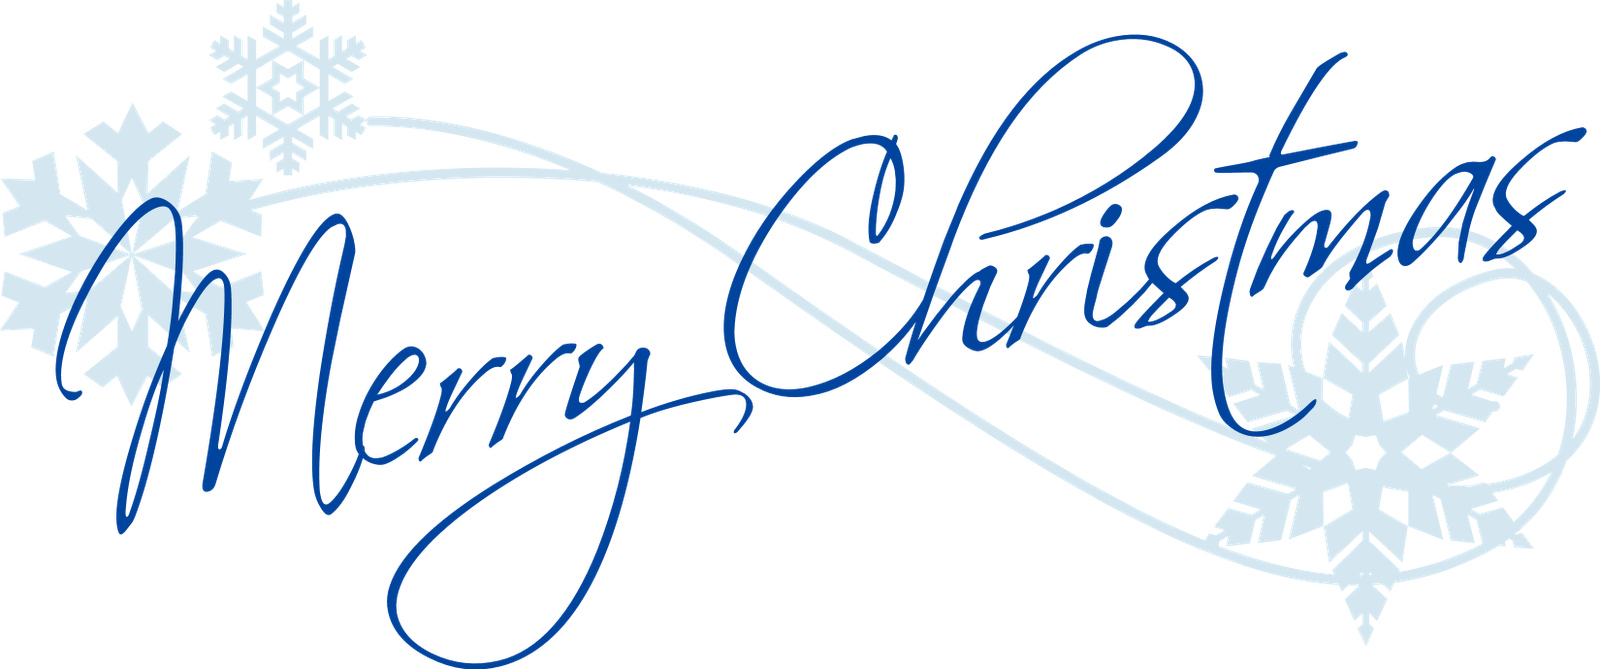 Merry-Christmas-Text-Transparent-14